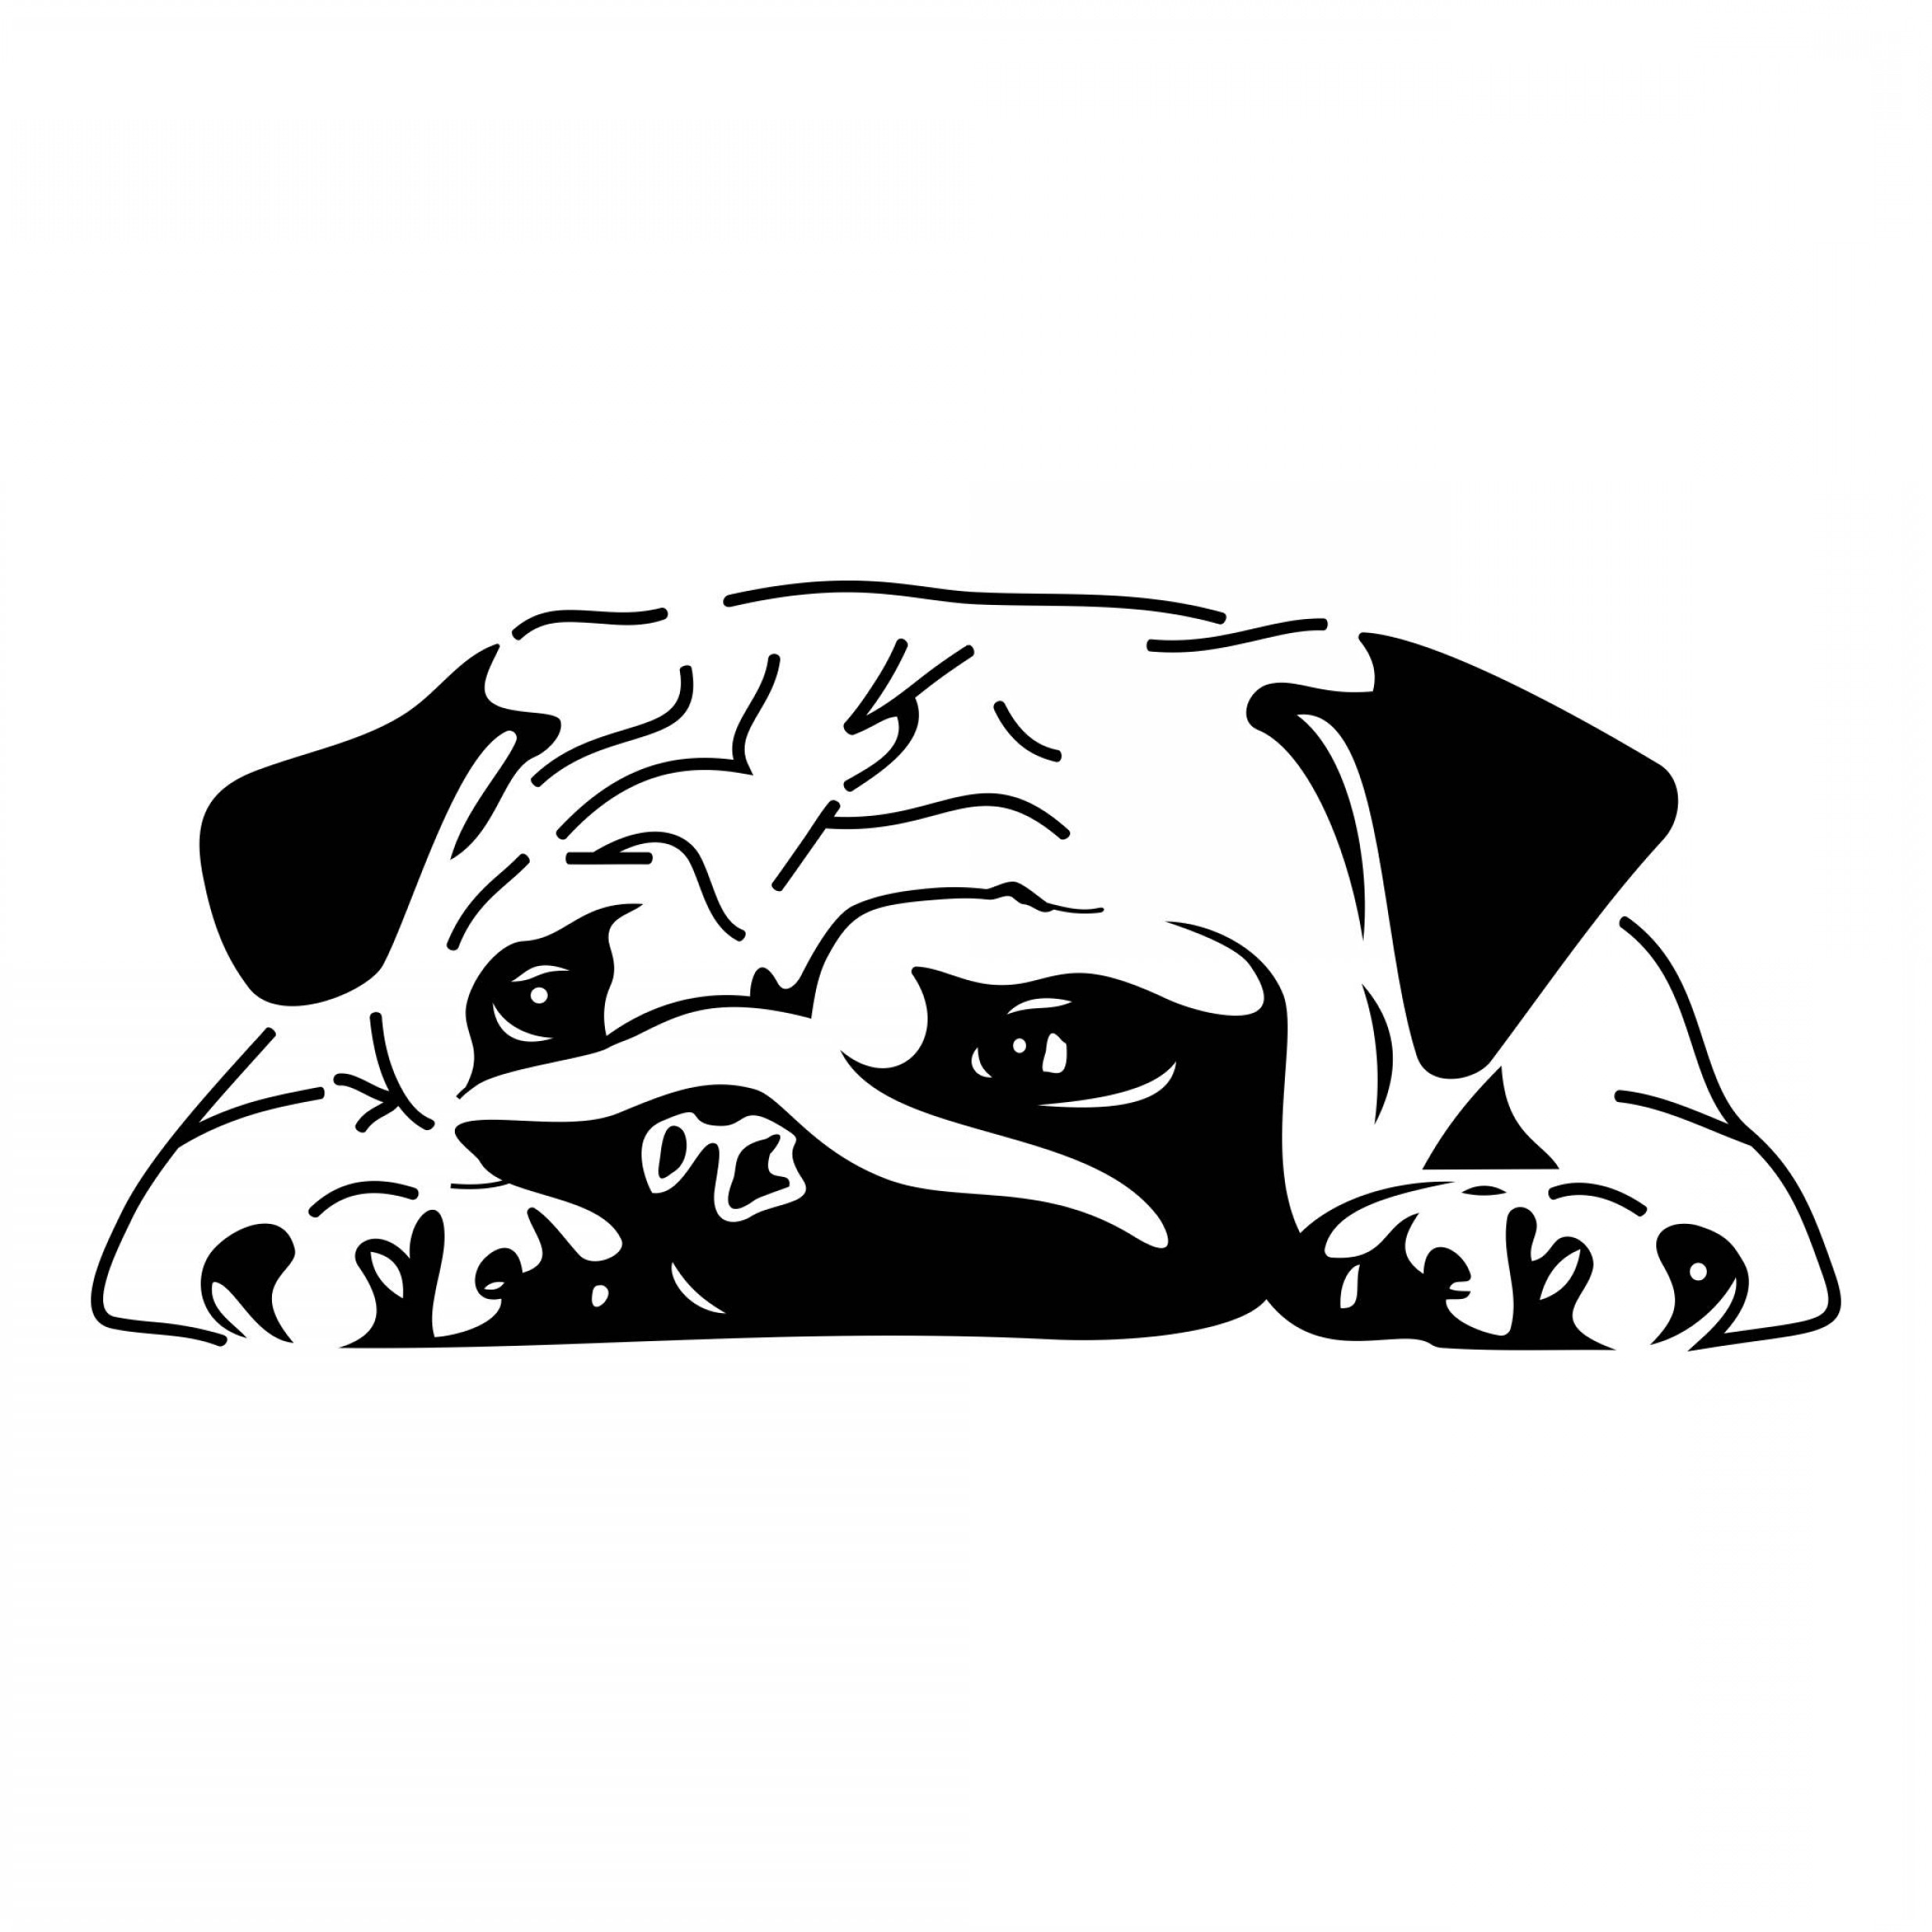 Bulldog Vector Art: Bulldog Graphics Svg Dxf Eps Png Cdr Ai